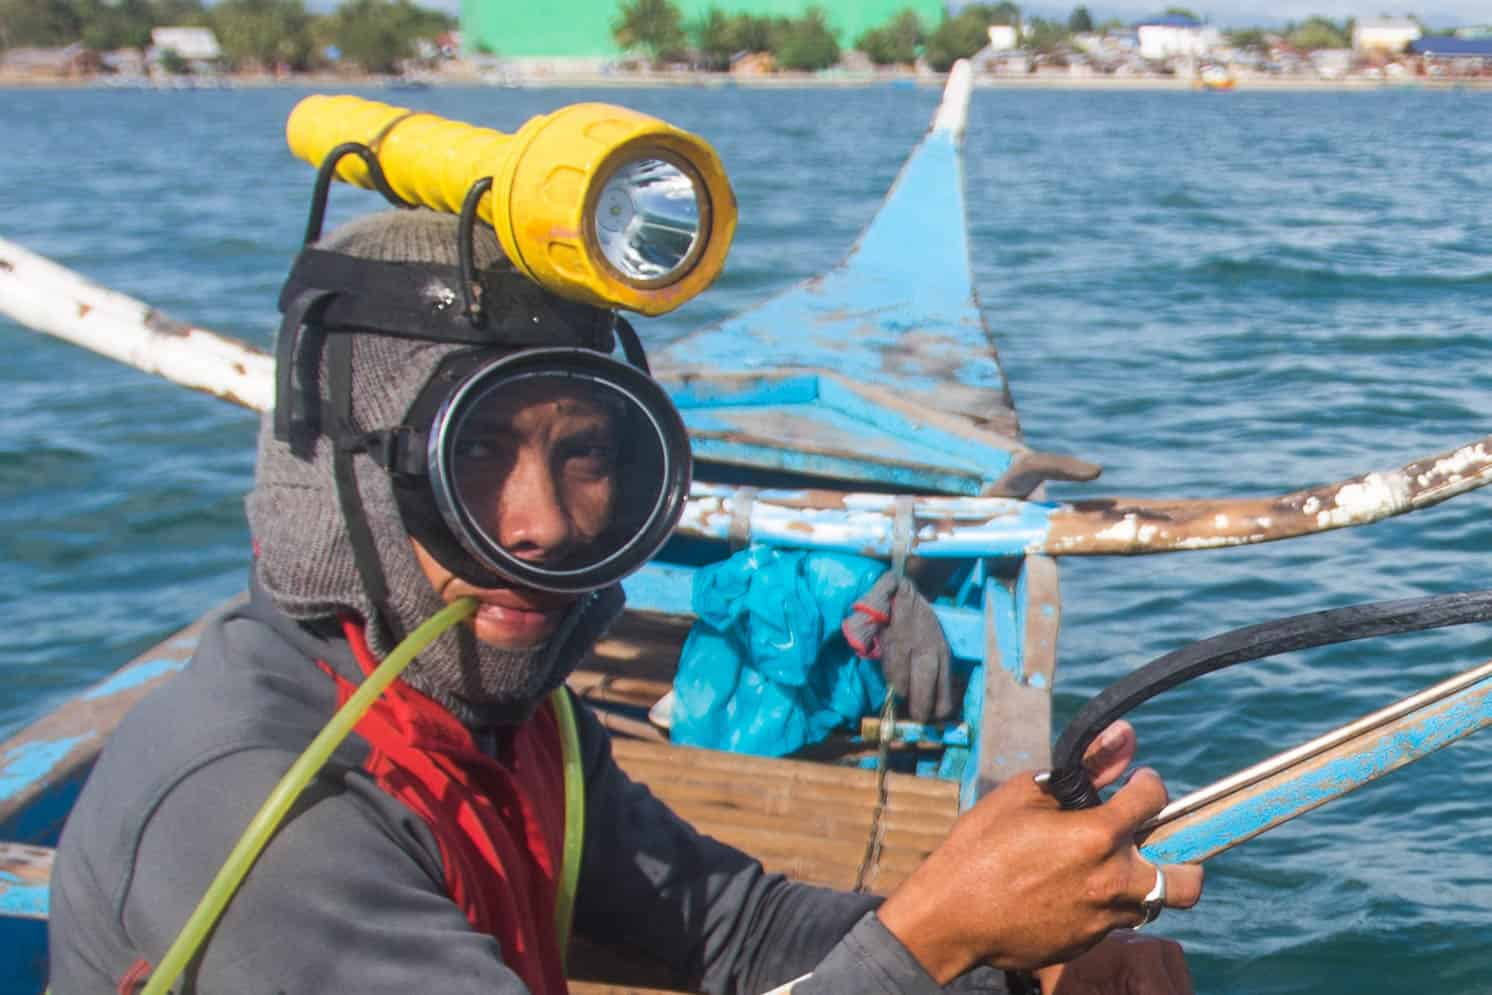 A man sits on a boat, with a swim mask on, a flashlight strapped to his head and a plastic tube in his mouth, ready to go pa-aling, one of the most dangerous jobs.